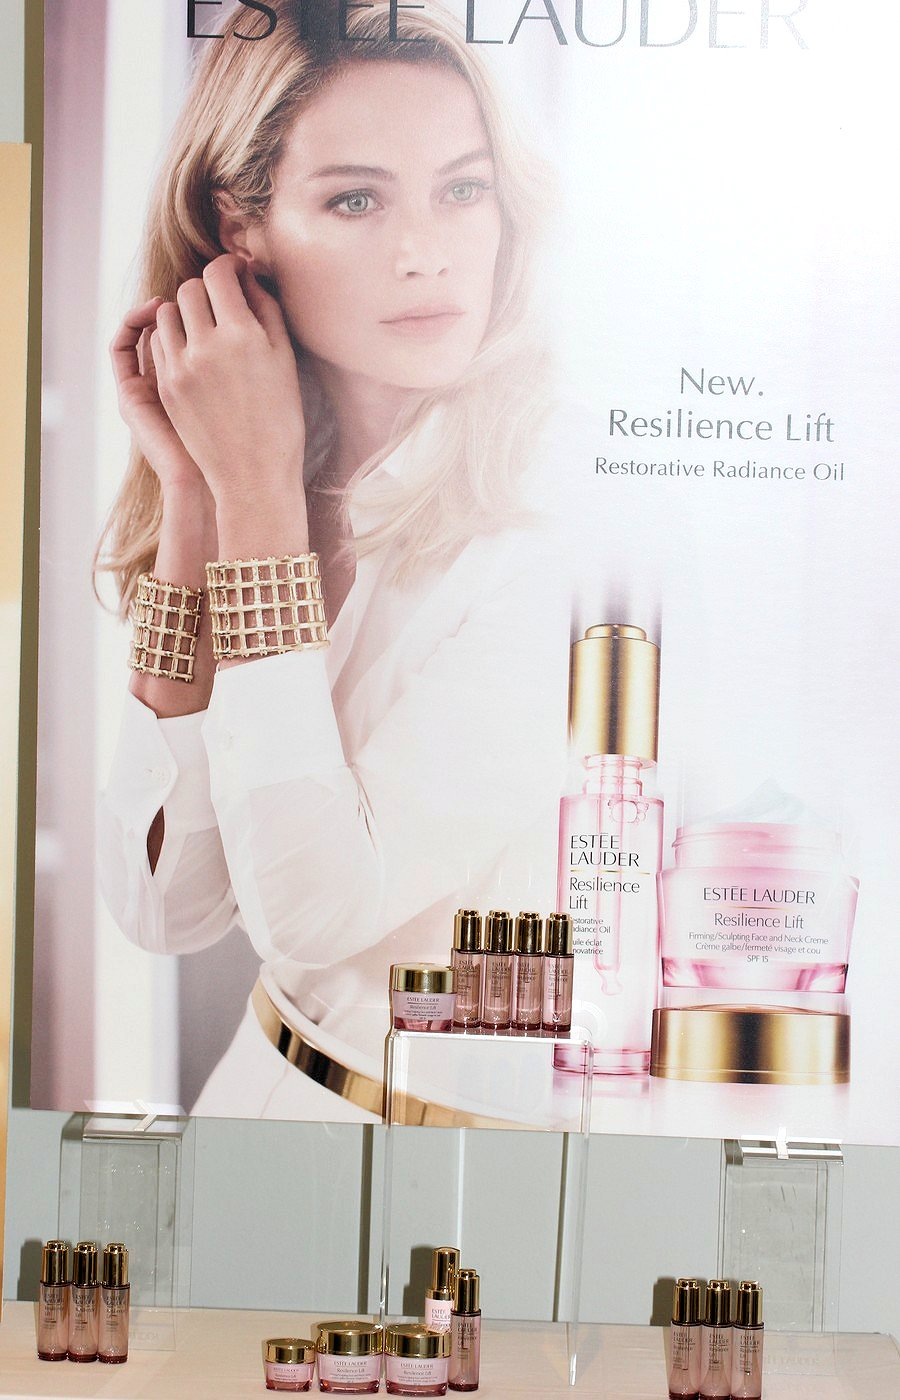 Estee lauder clear difference spring